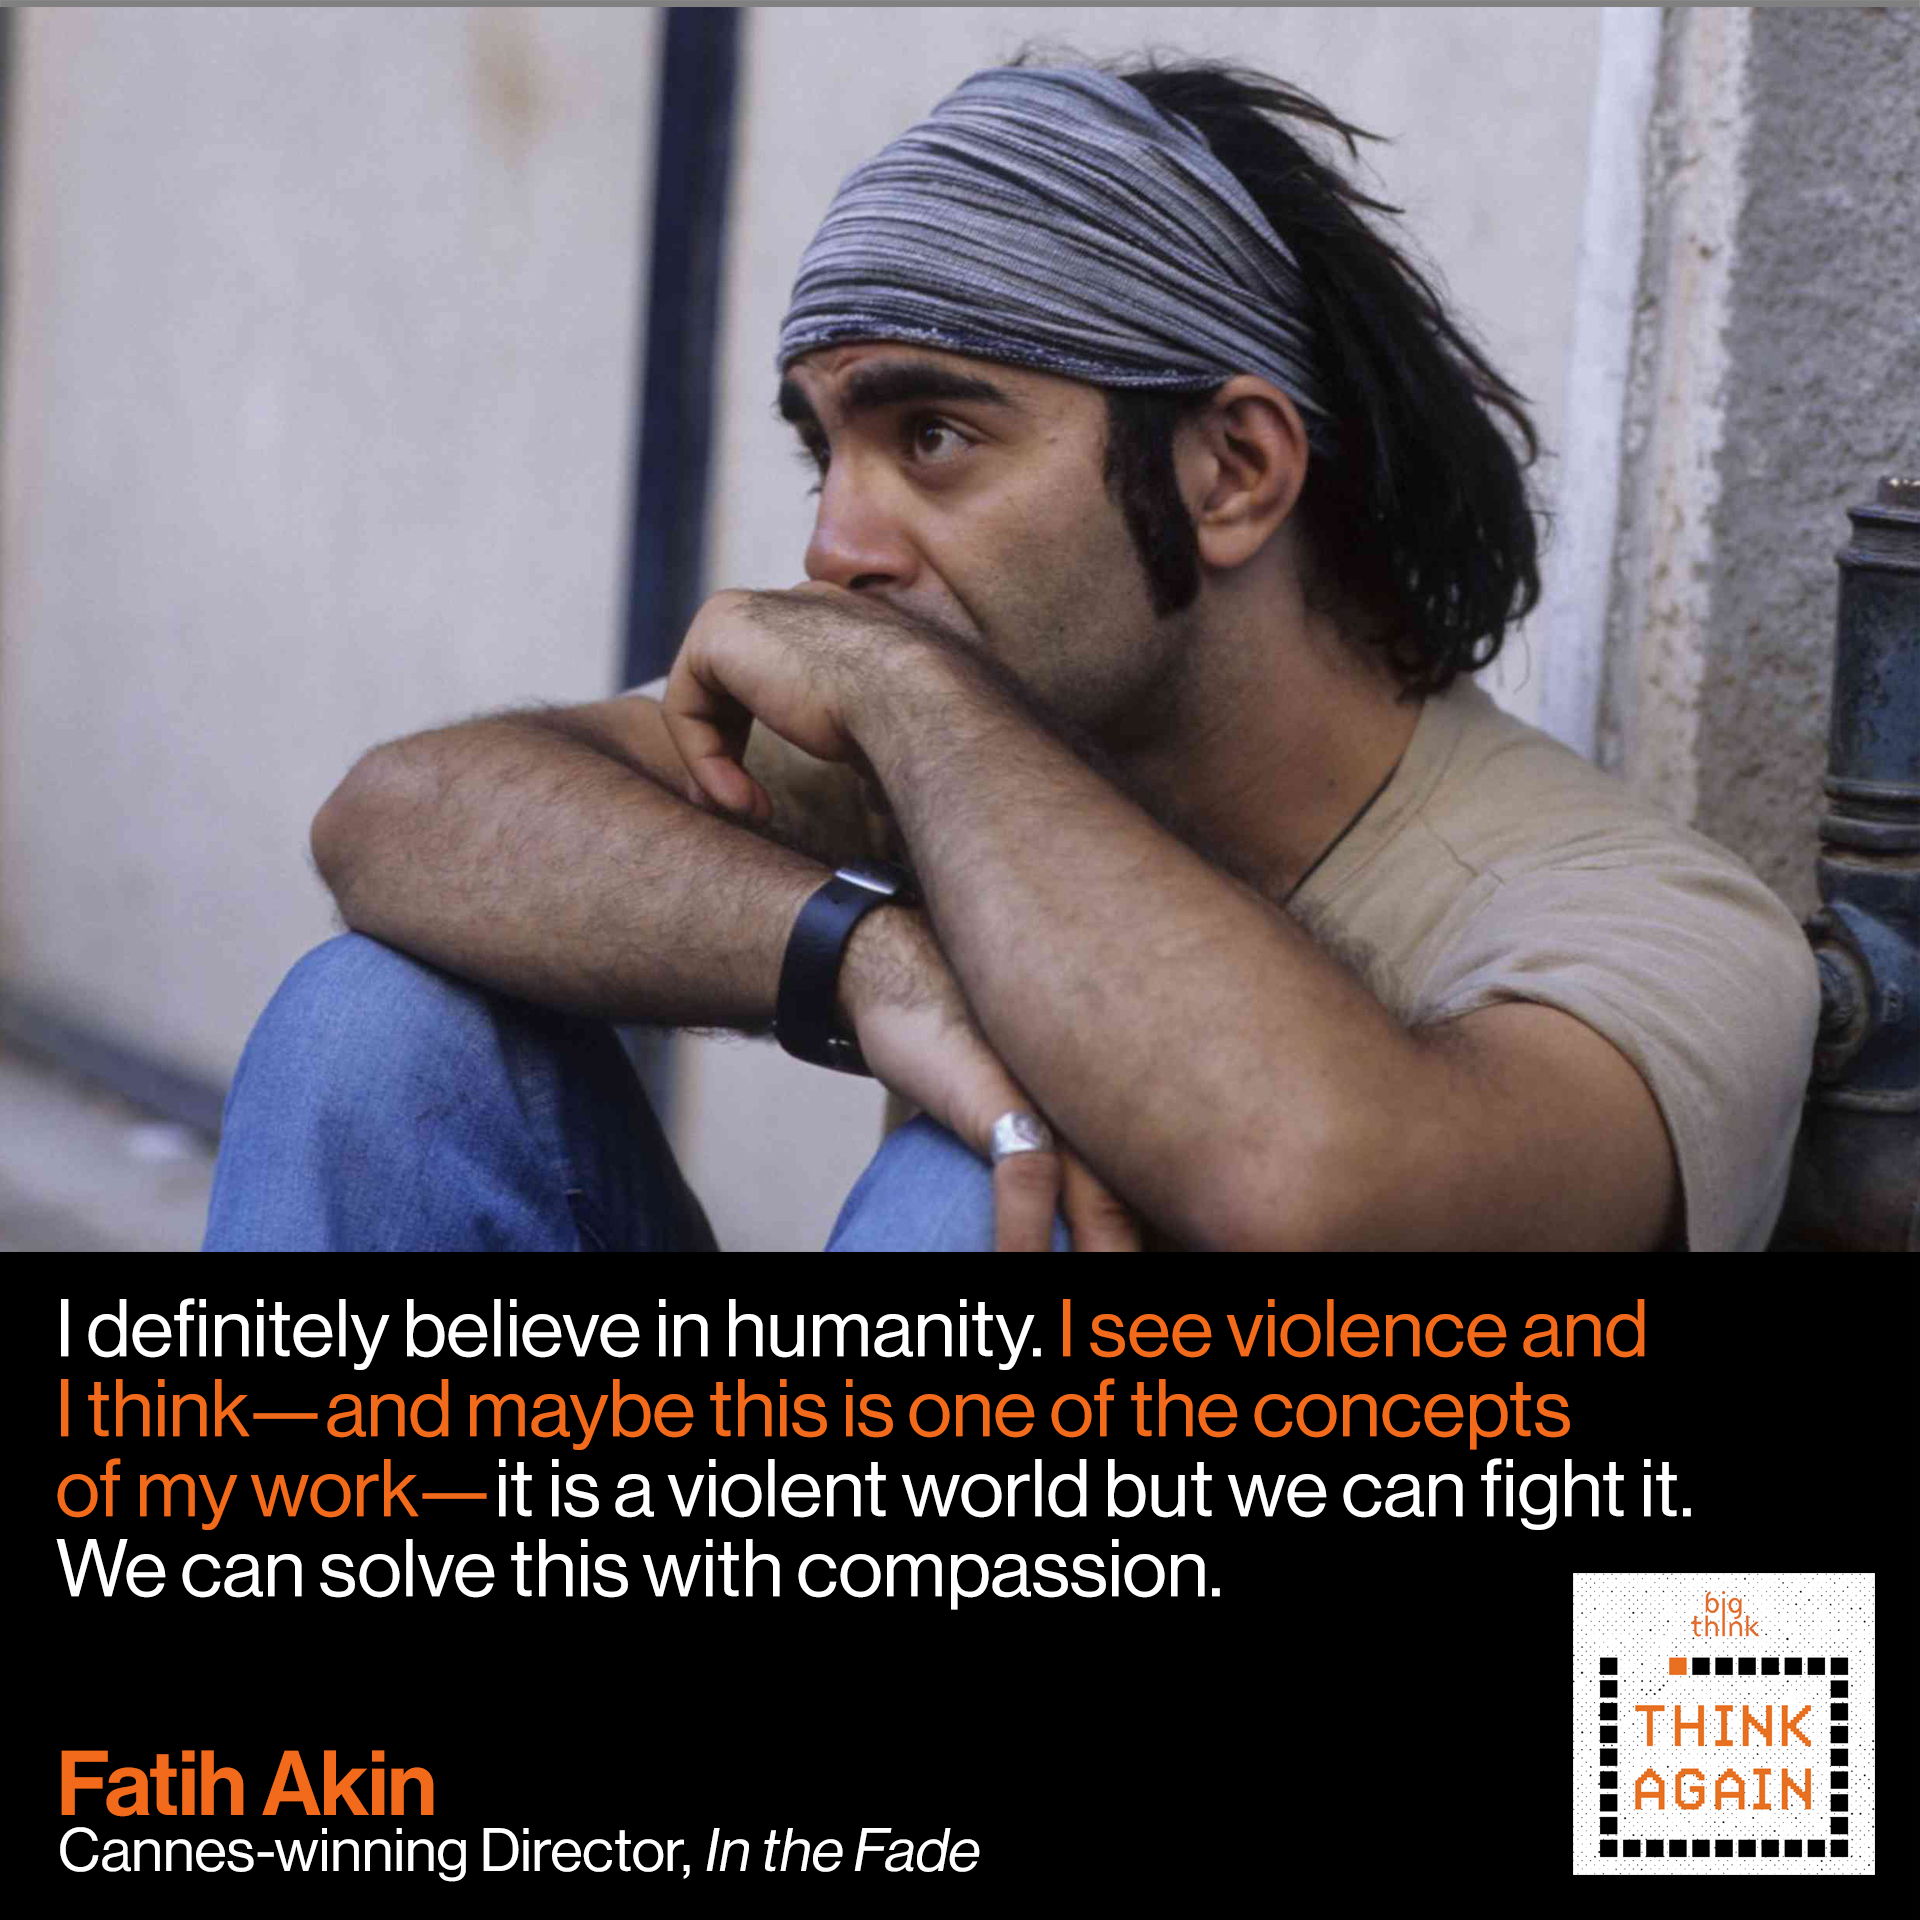 Fatih Akin Quote:  I definitely believe in humanity. I see violence and I think— and maybe this is one of the concepts of my work— it is a violent world but we can fight it.  We can solve this with compassion.